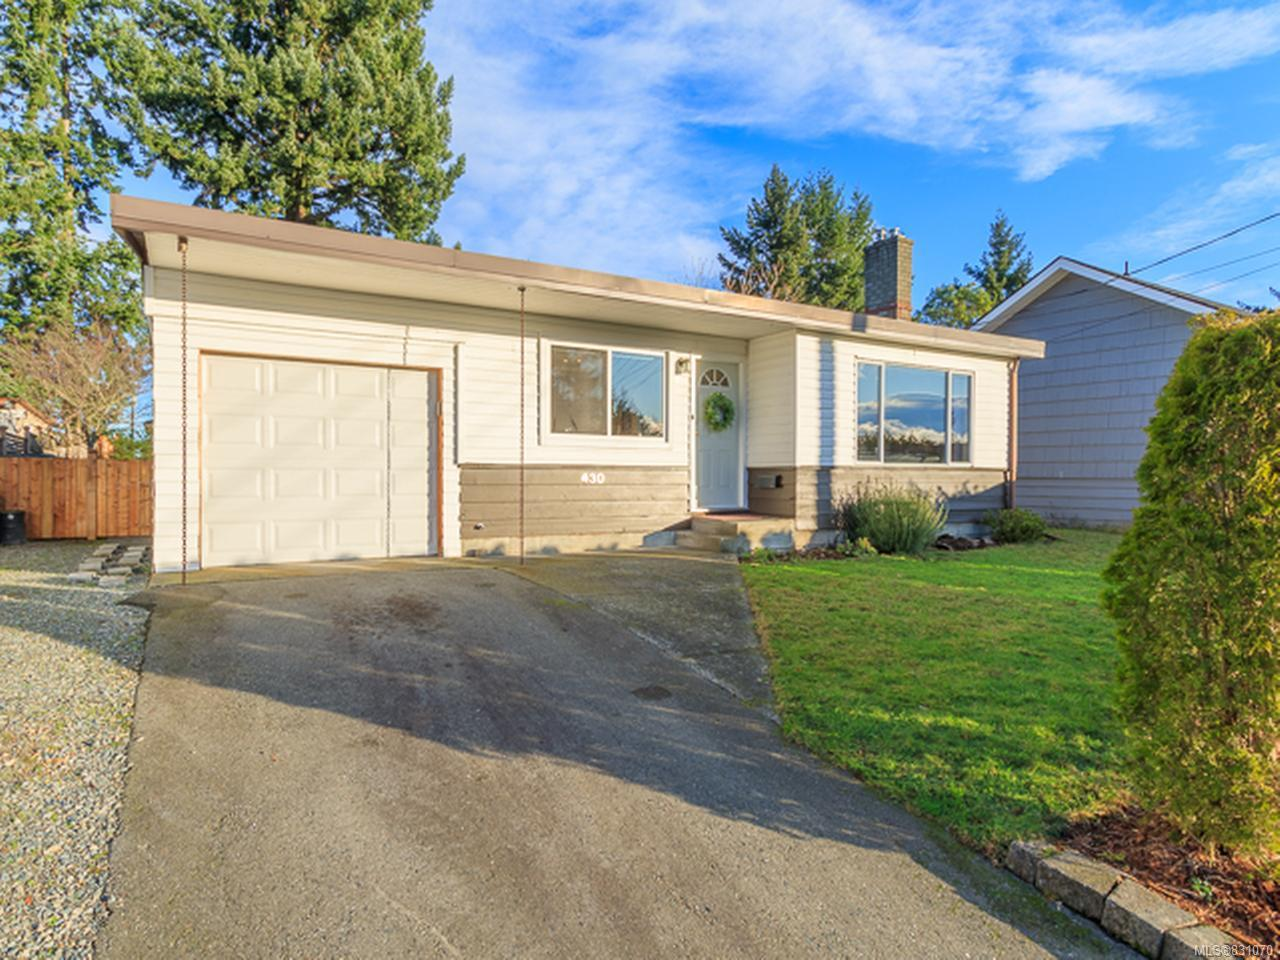 FEATURED LISTING: 430 JUNIPER STREET NANAIMO